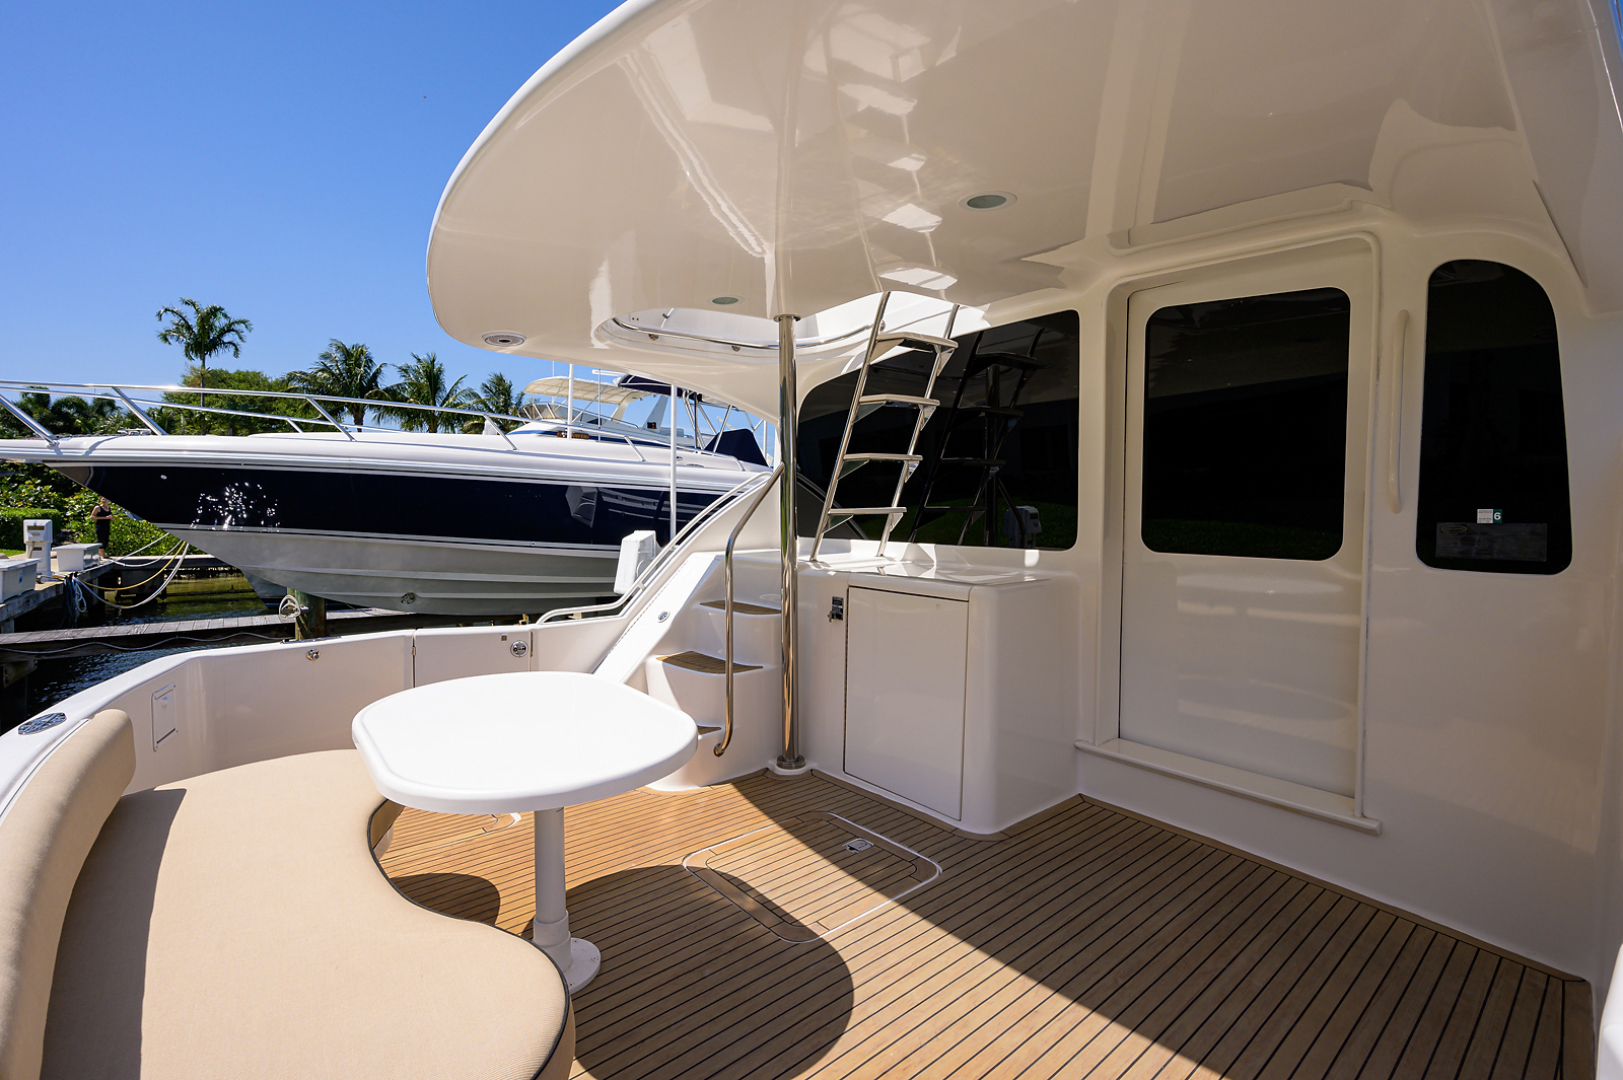 Ocean Yachts-Odyssey 2005-MISS JAN Palm Beach Gardens-Florida-United States-Cockpit-1387040 | Thumbnail